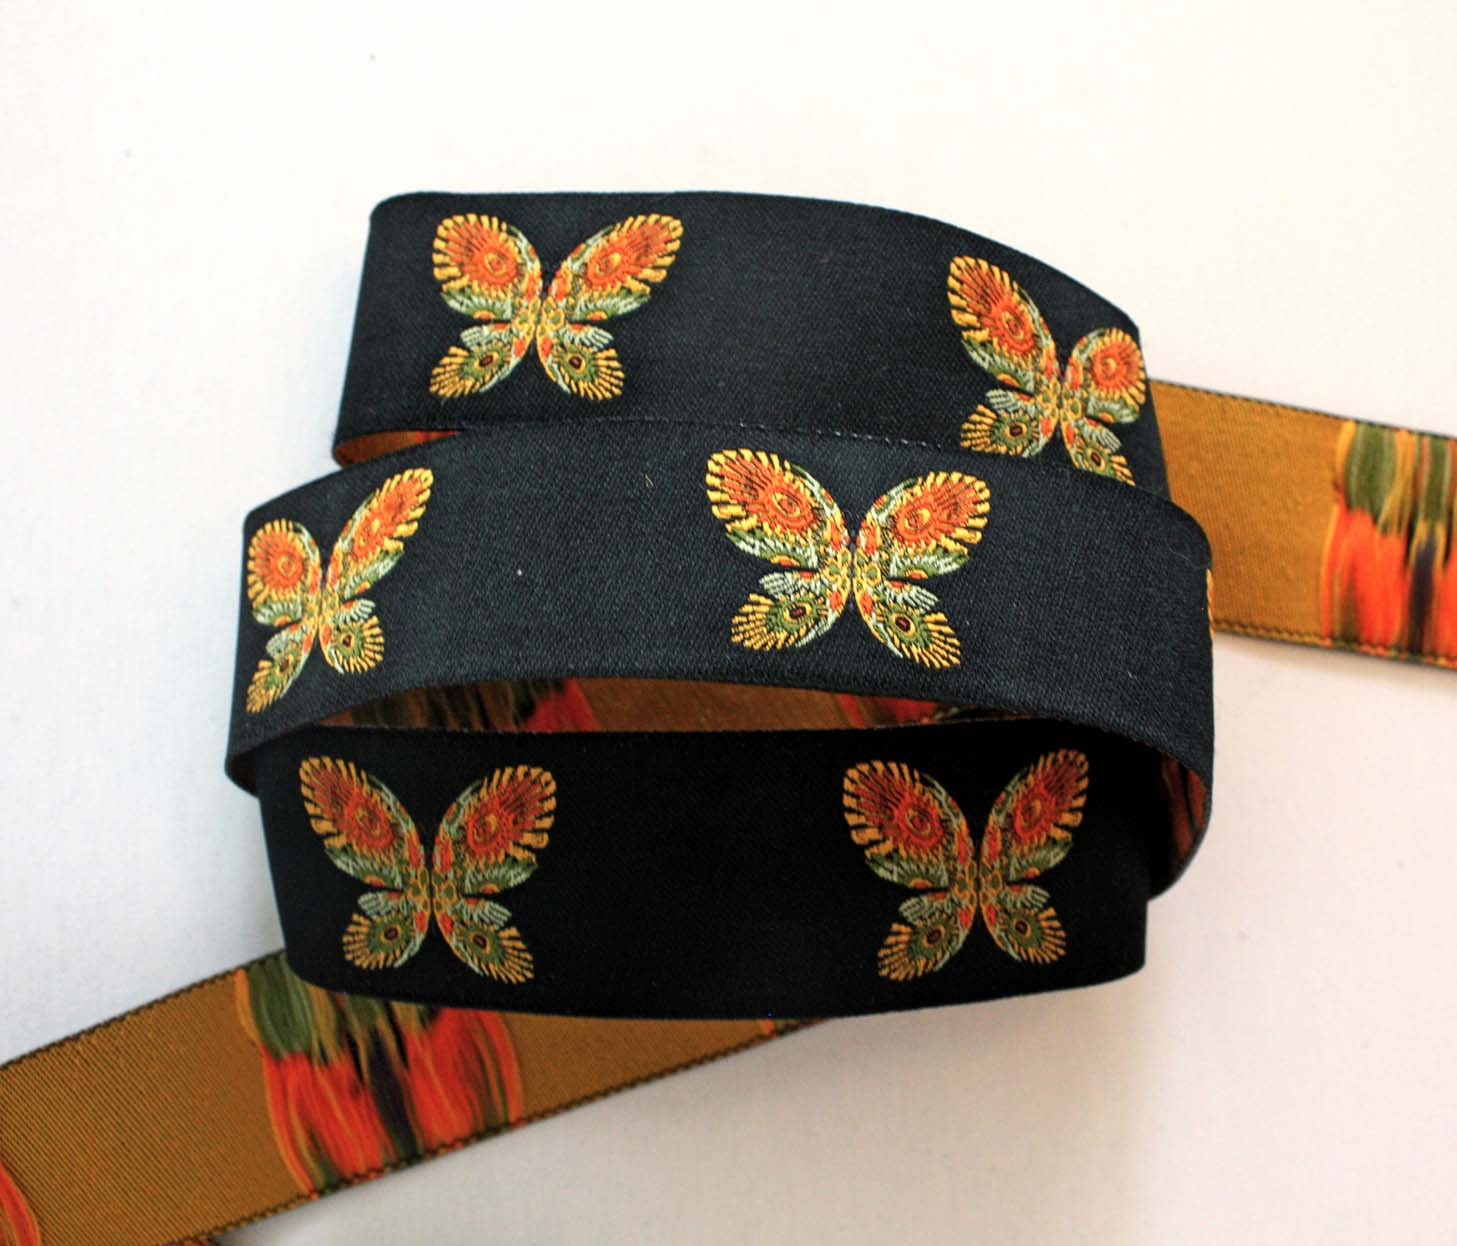 "Butterfly2015 Ribbon 1"" x 3 yards Black, Orange, Green & Yellow"